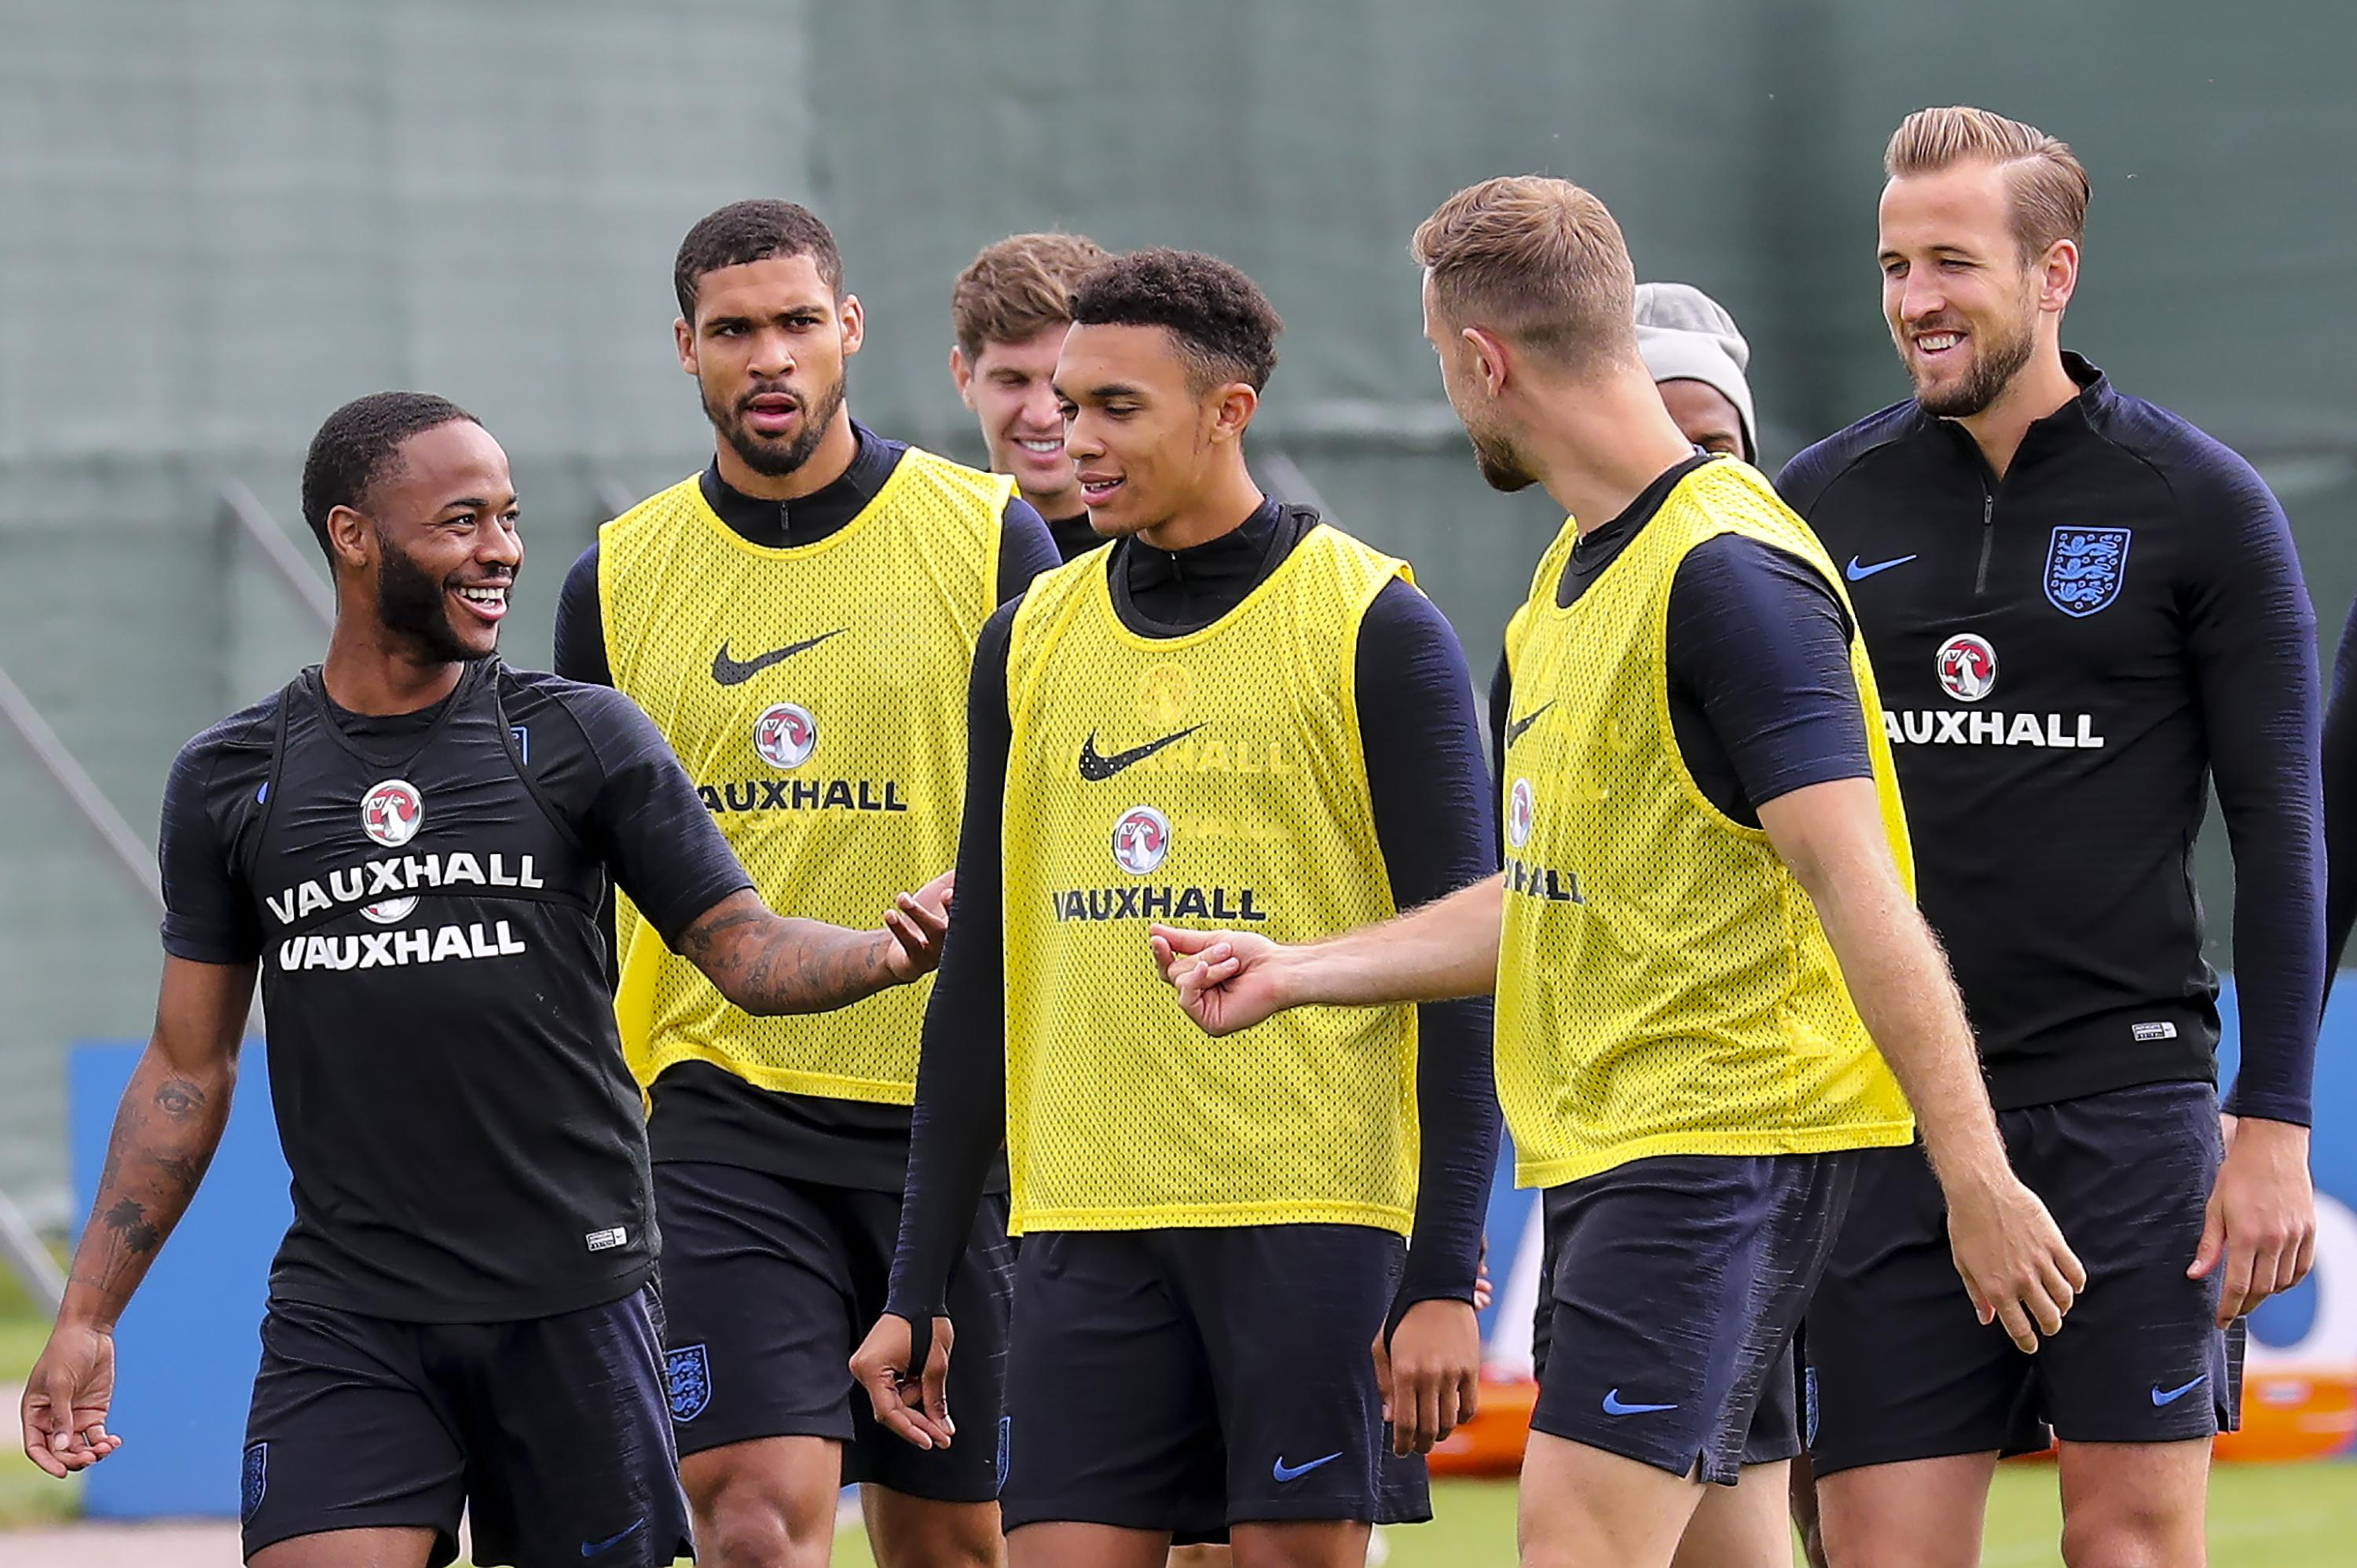 Hamilton admits he may have his mind on England's football stars come Sunday